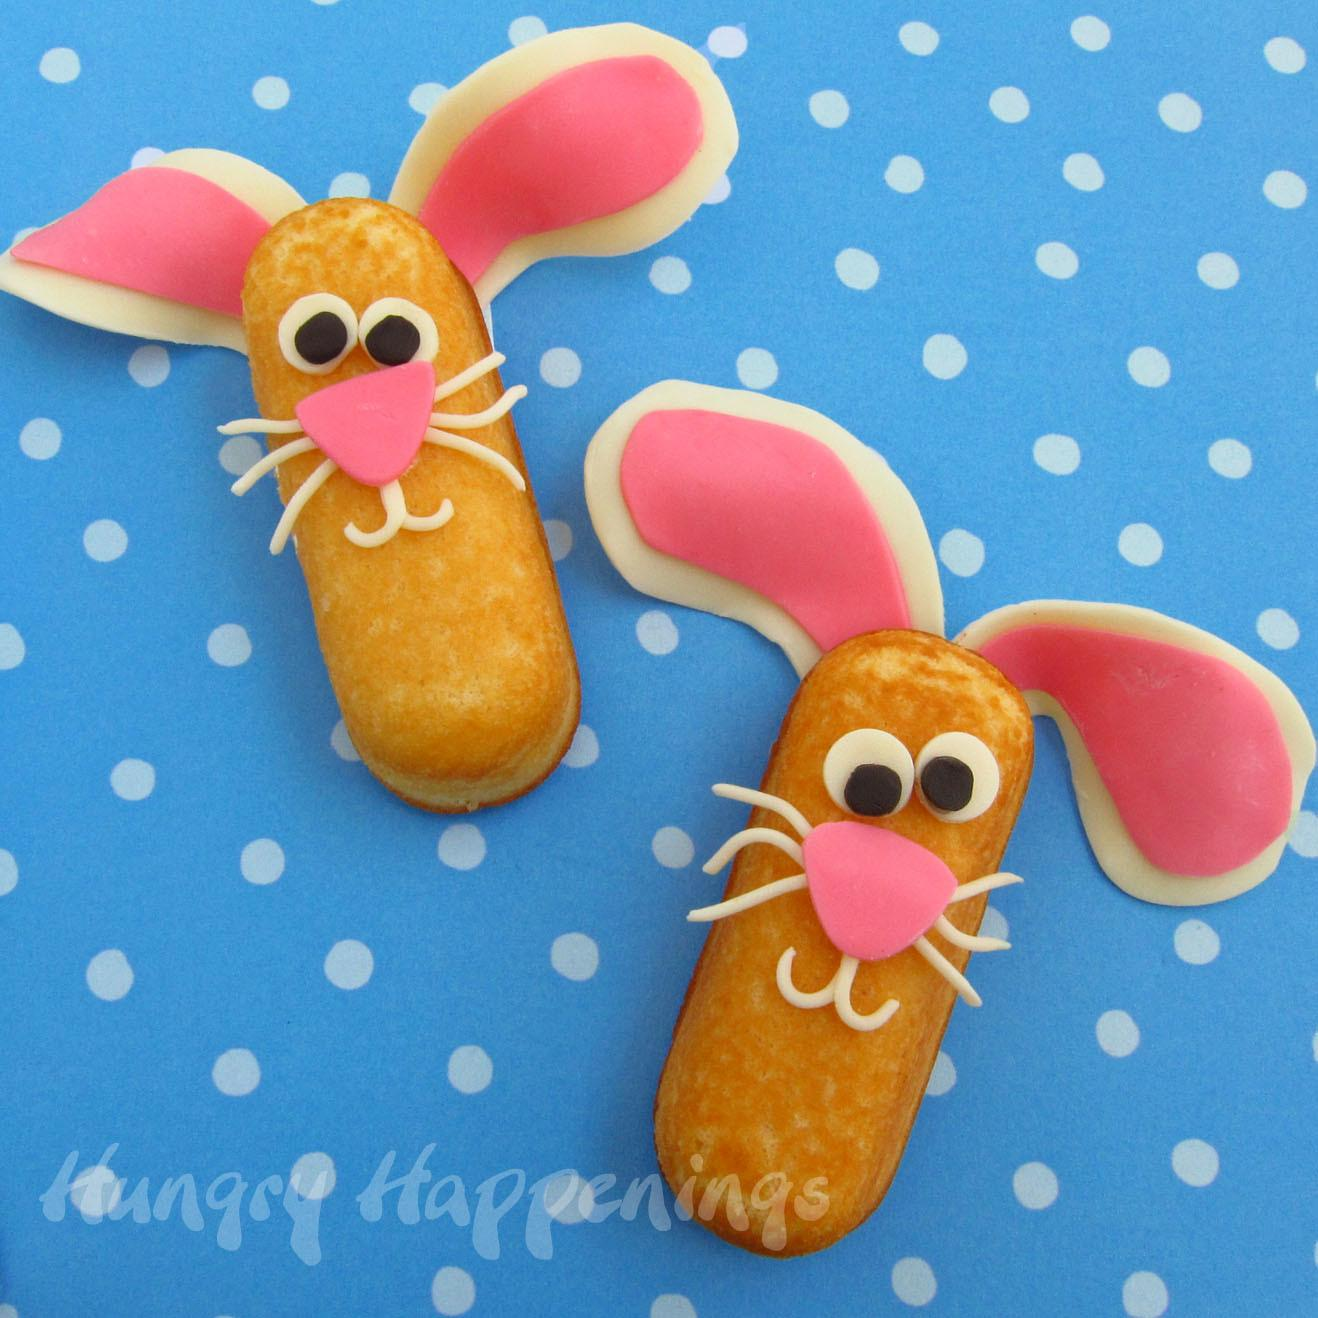 Reese Peanut Butter Bunny Feet Hungry Happenings